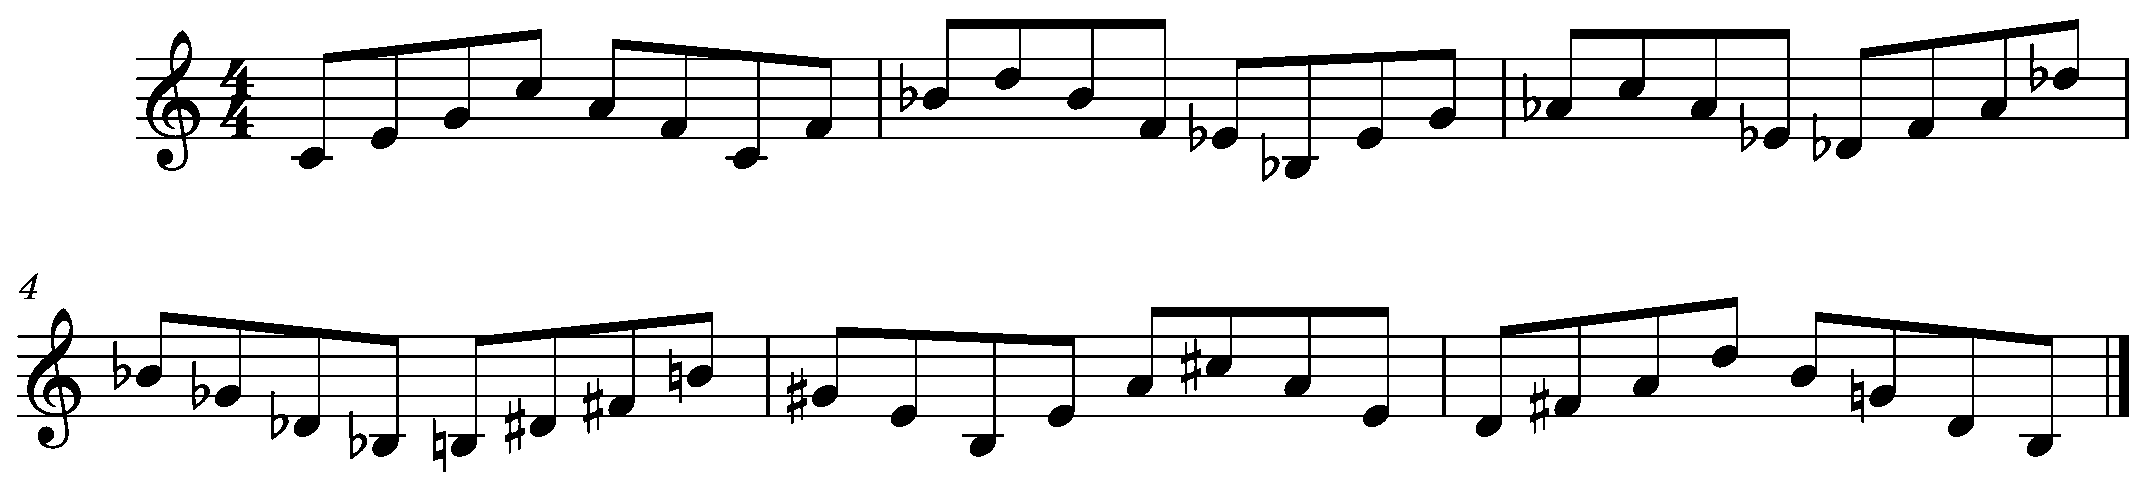 Ex. 3 Triads Within a Major 10th